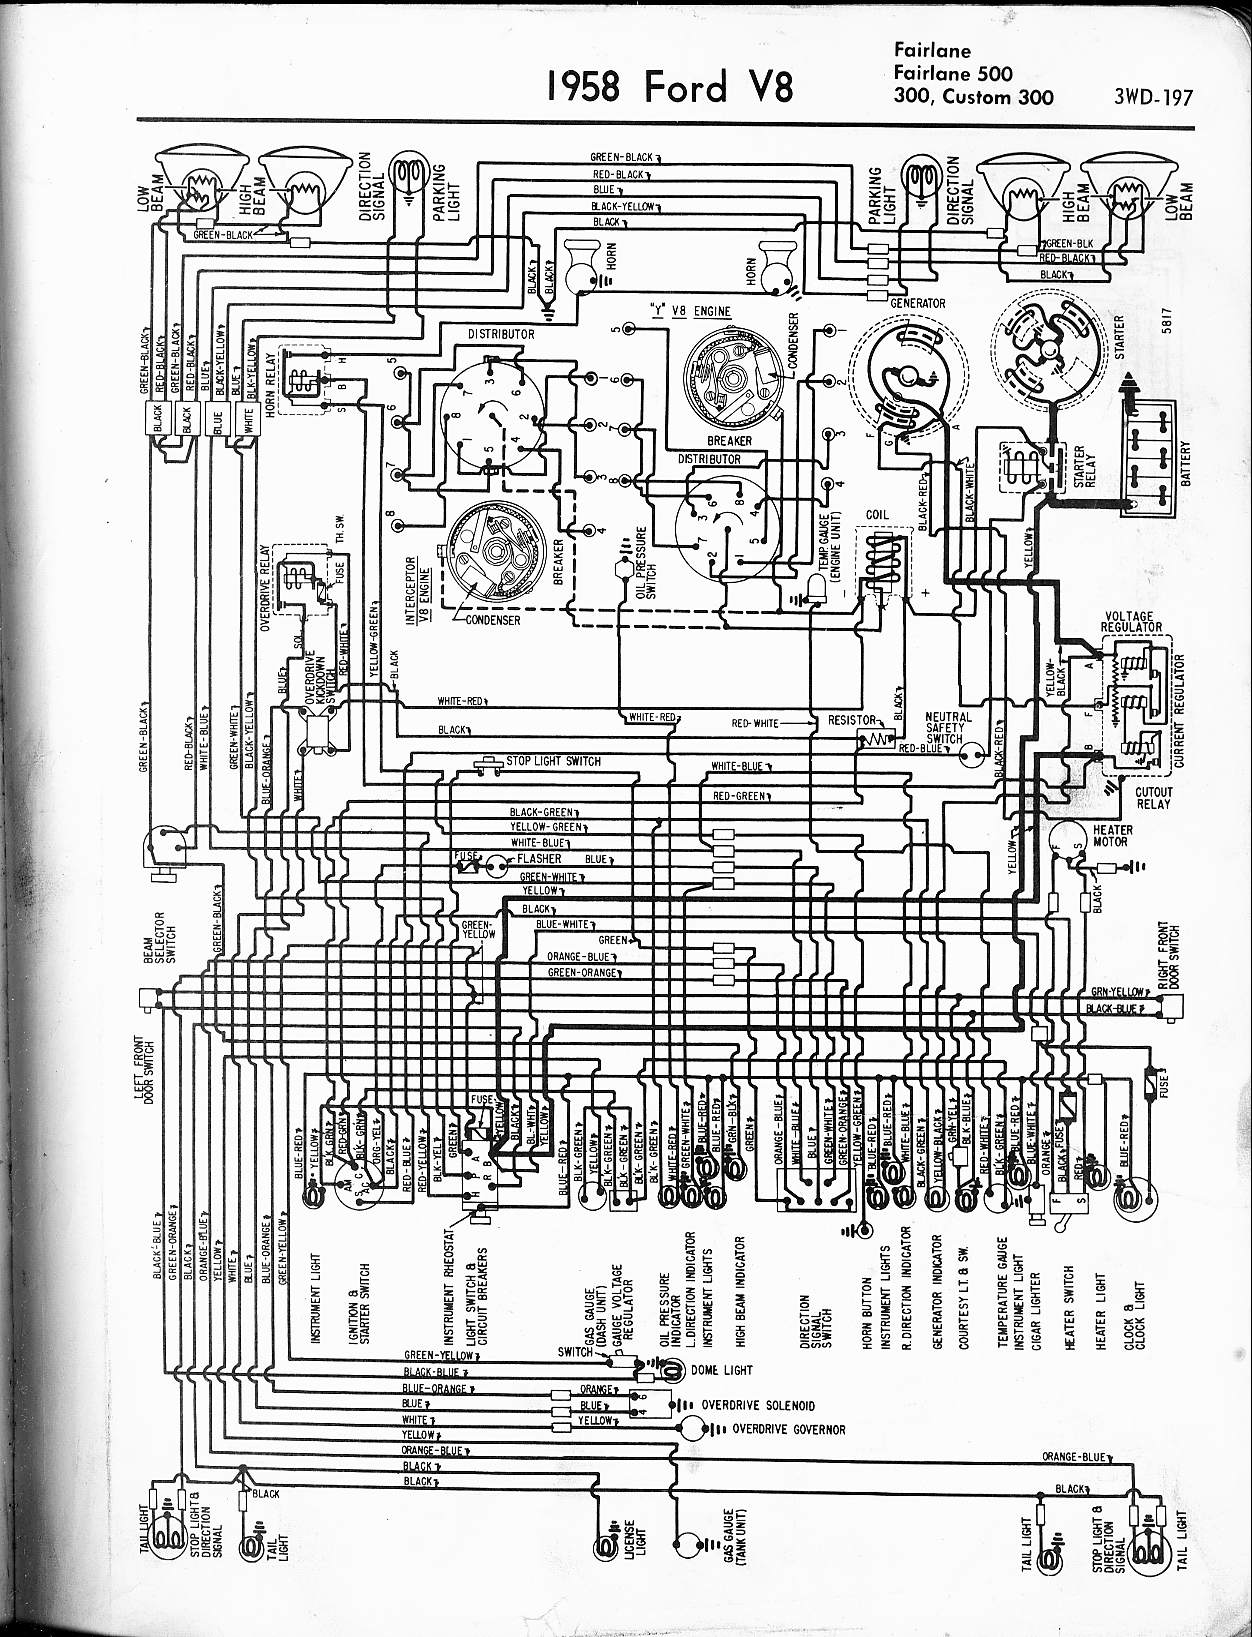 Ford Wiring Schematic Electronic Diagrams F 350 57 65 Diagram 1958 V8 Fairlane 500